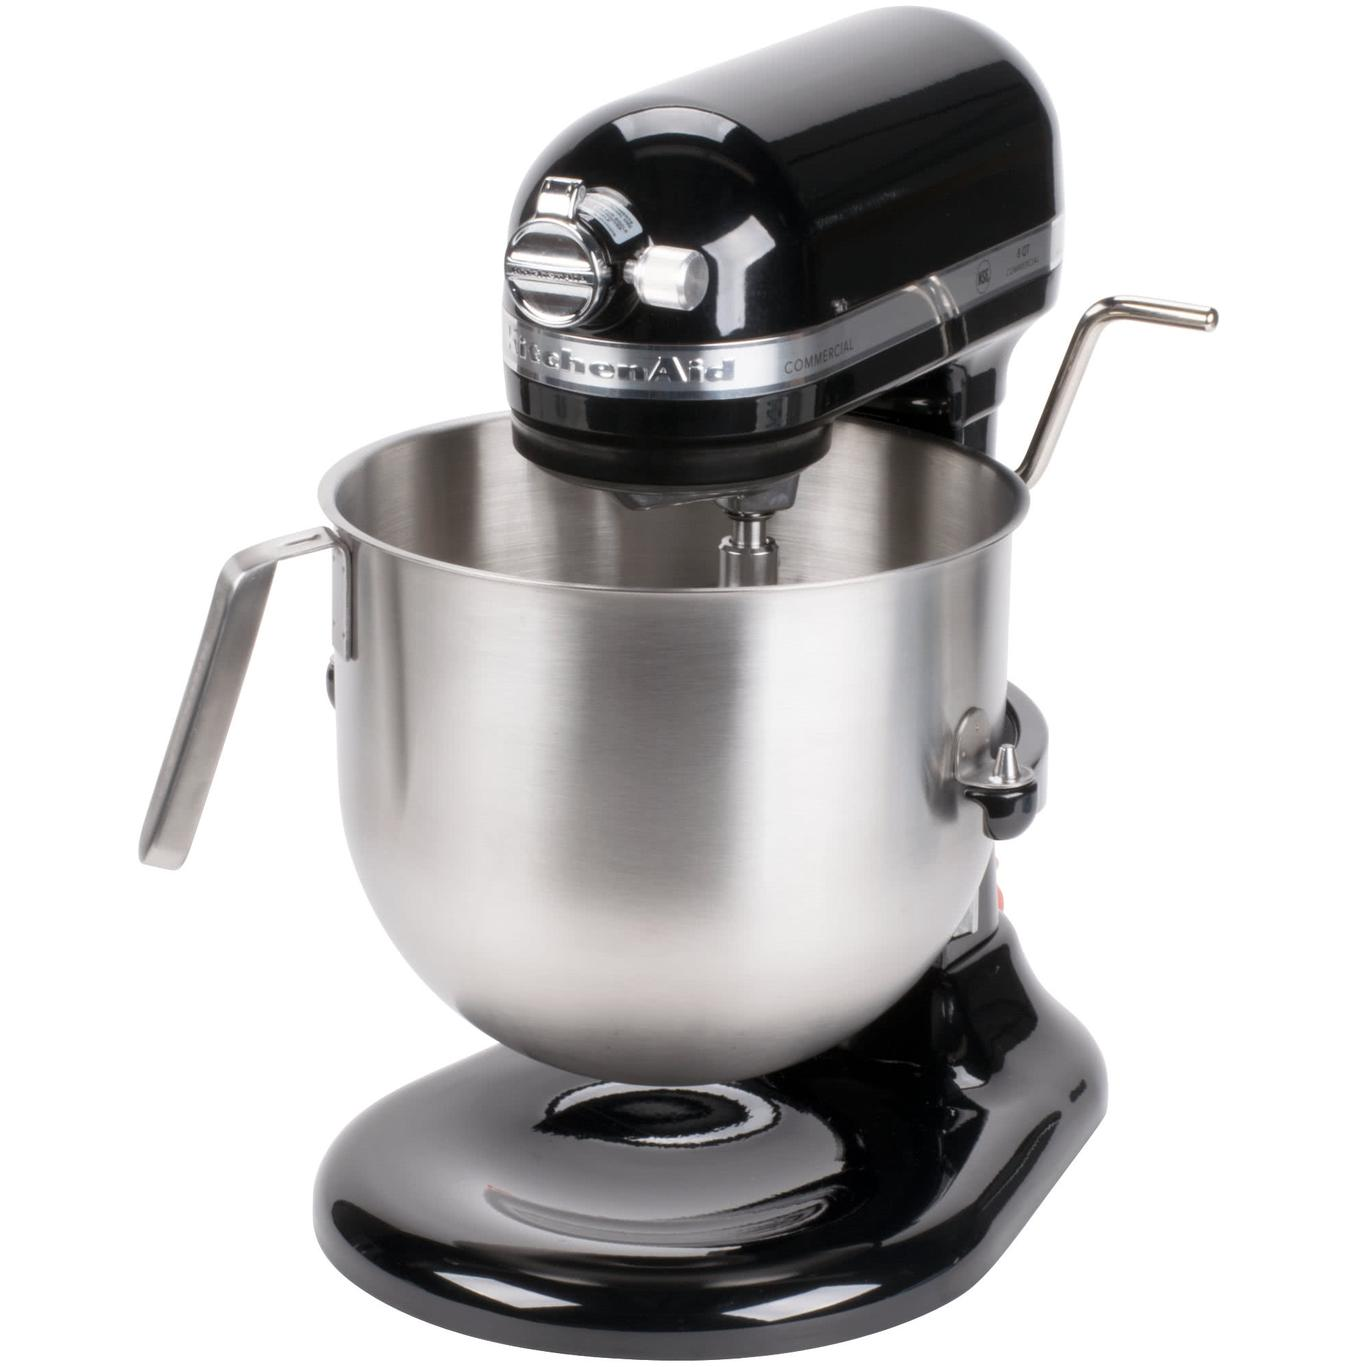 KitchenAid KSM8990OB 8 Qt KitchenAid Countertop